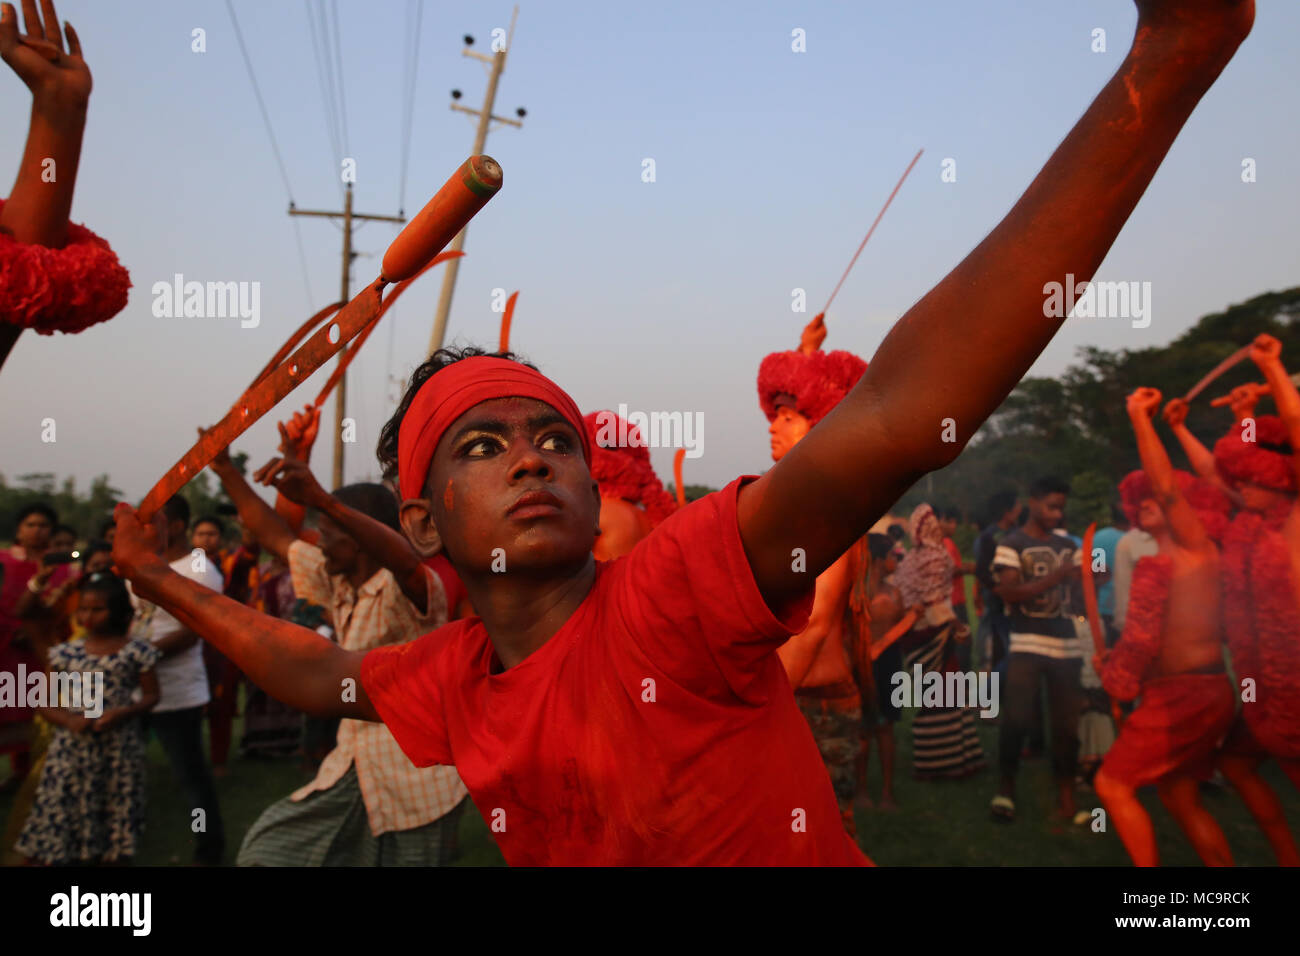 Dhaka, Bangladesh. Hindu devotees take part in lal Kach festival during the last day of Bengali month in Munshigonj, near Dhaka, Bangladesh on April 13, 2018. The festival is well known for the local community for more than hundred years. The Hindu youth and men paint themselves with red color and attend a procession holding swords as they show power against evil and welcome the Bengali New Year 1425 on 14 April 2018. © Rehman Asad/Alamy Stock Photo Stock Photo